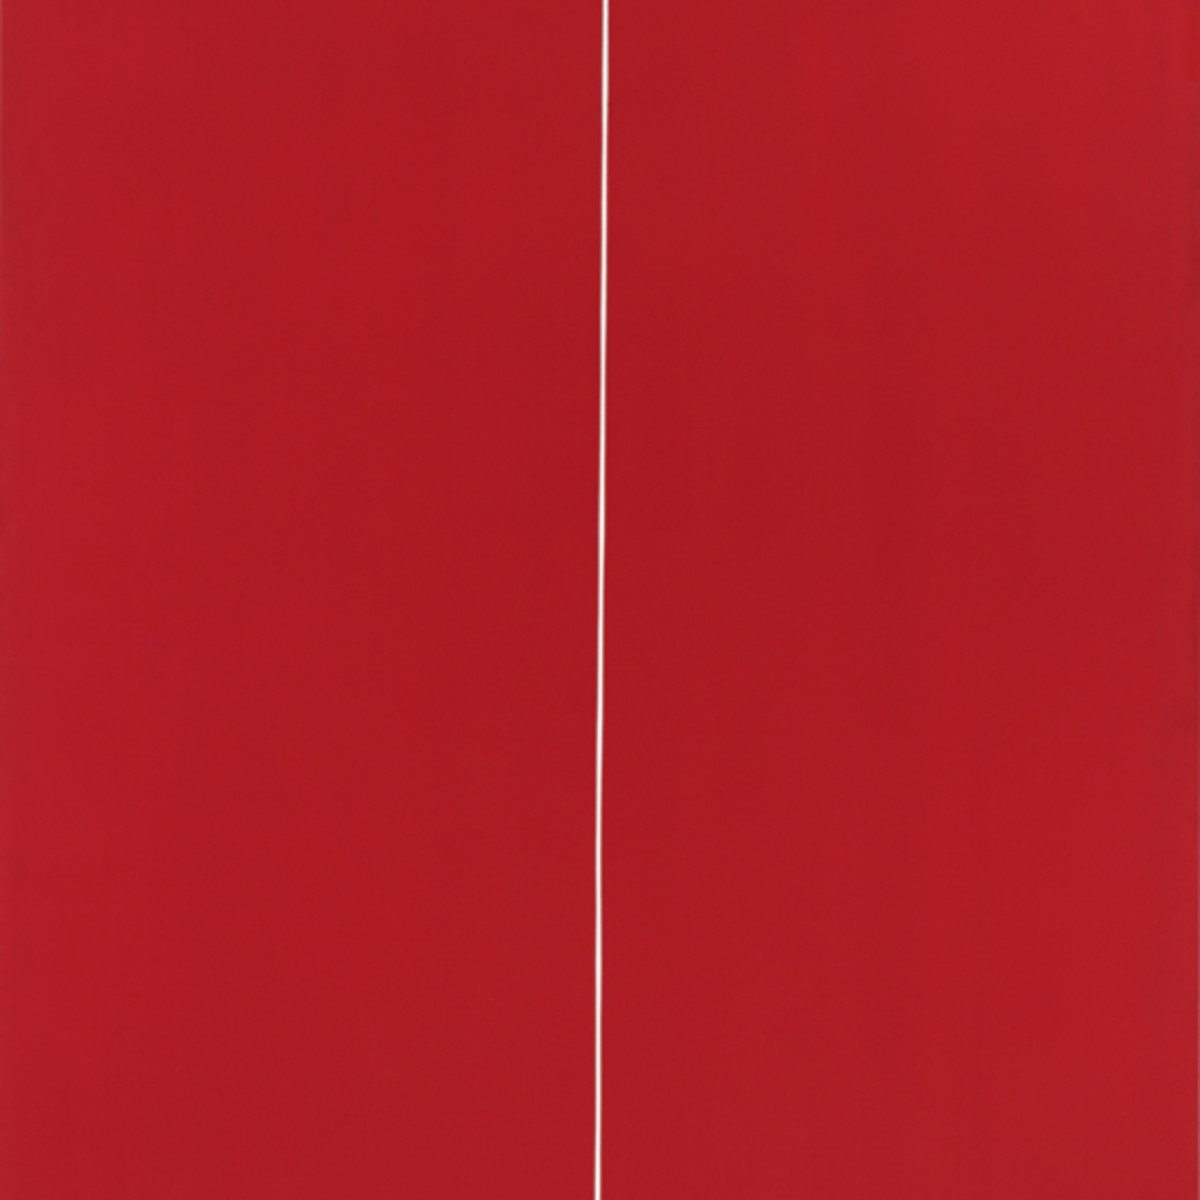 Menil Collection opening reception: Barnett Newman: The Late Work